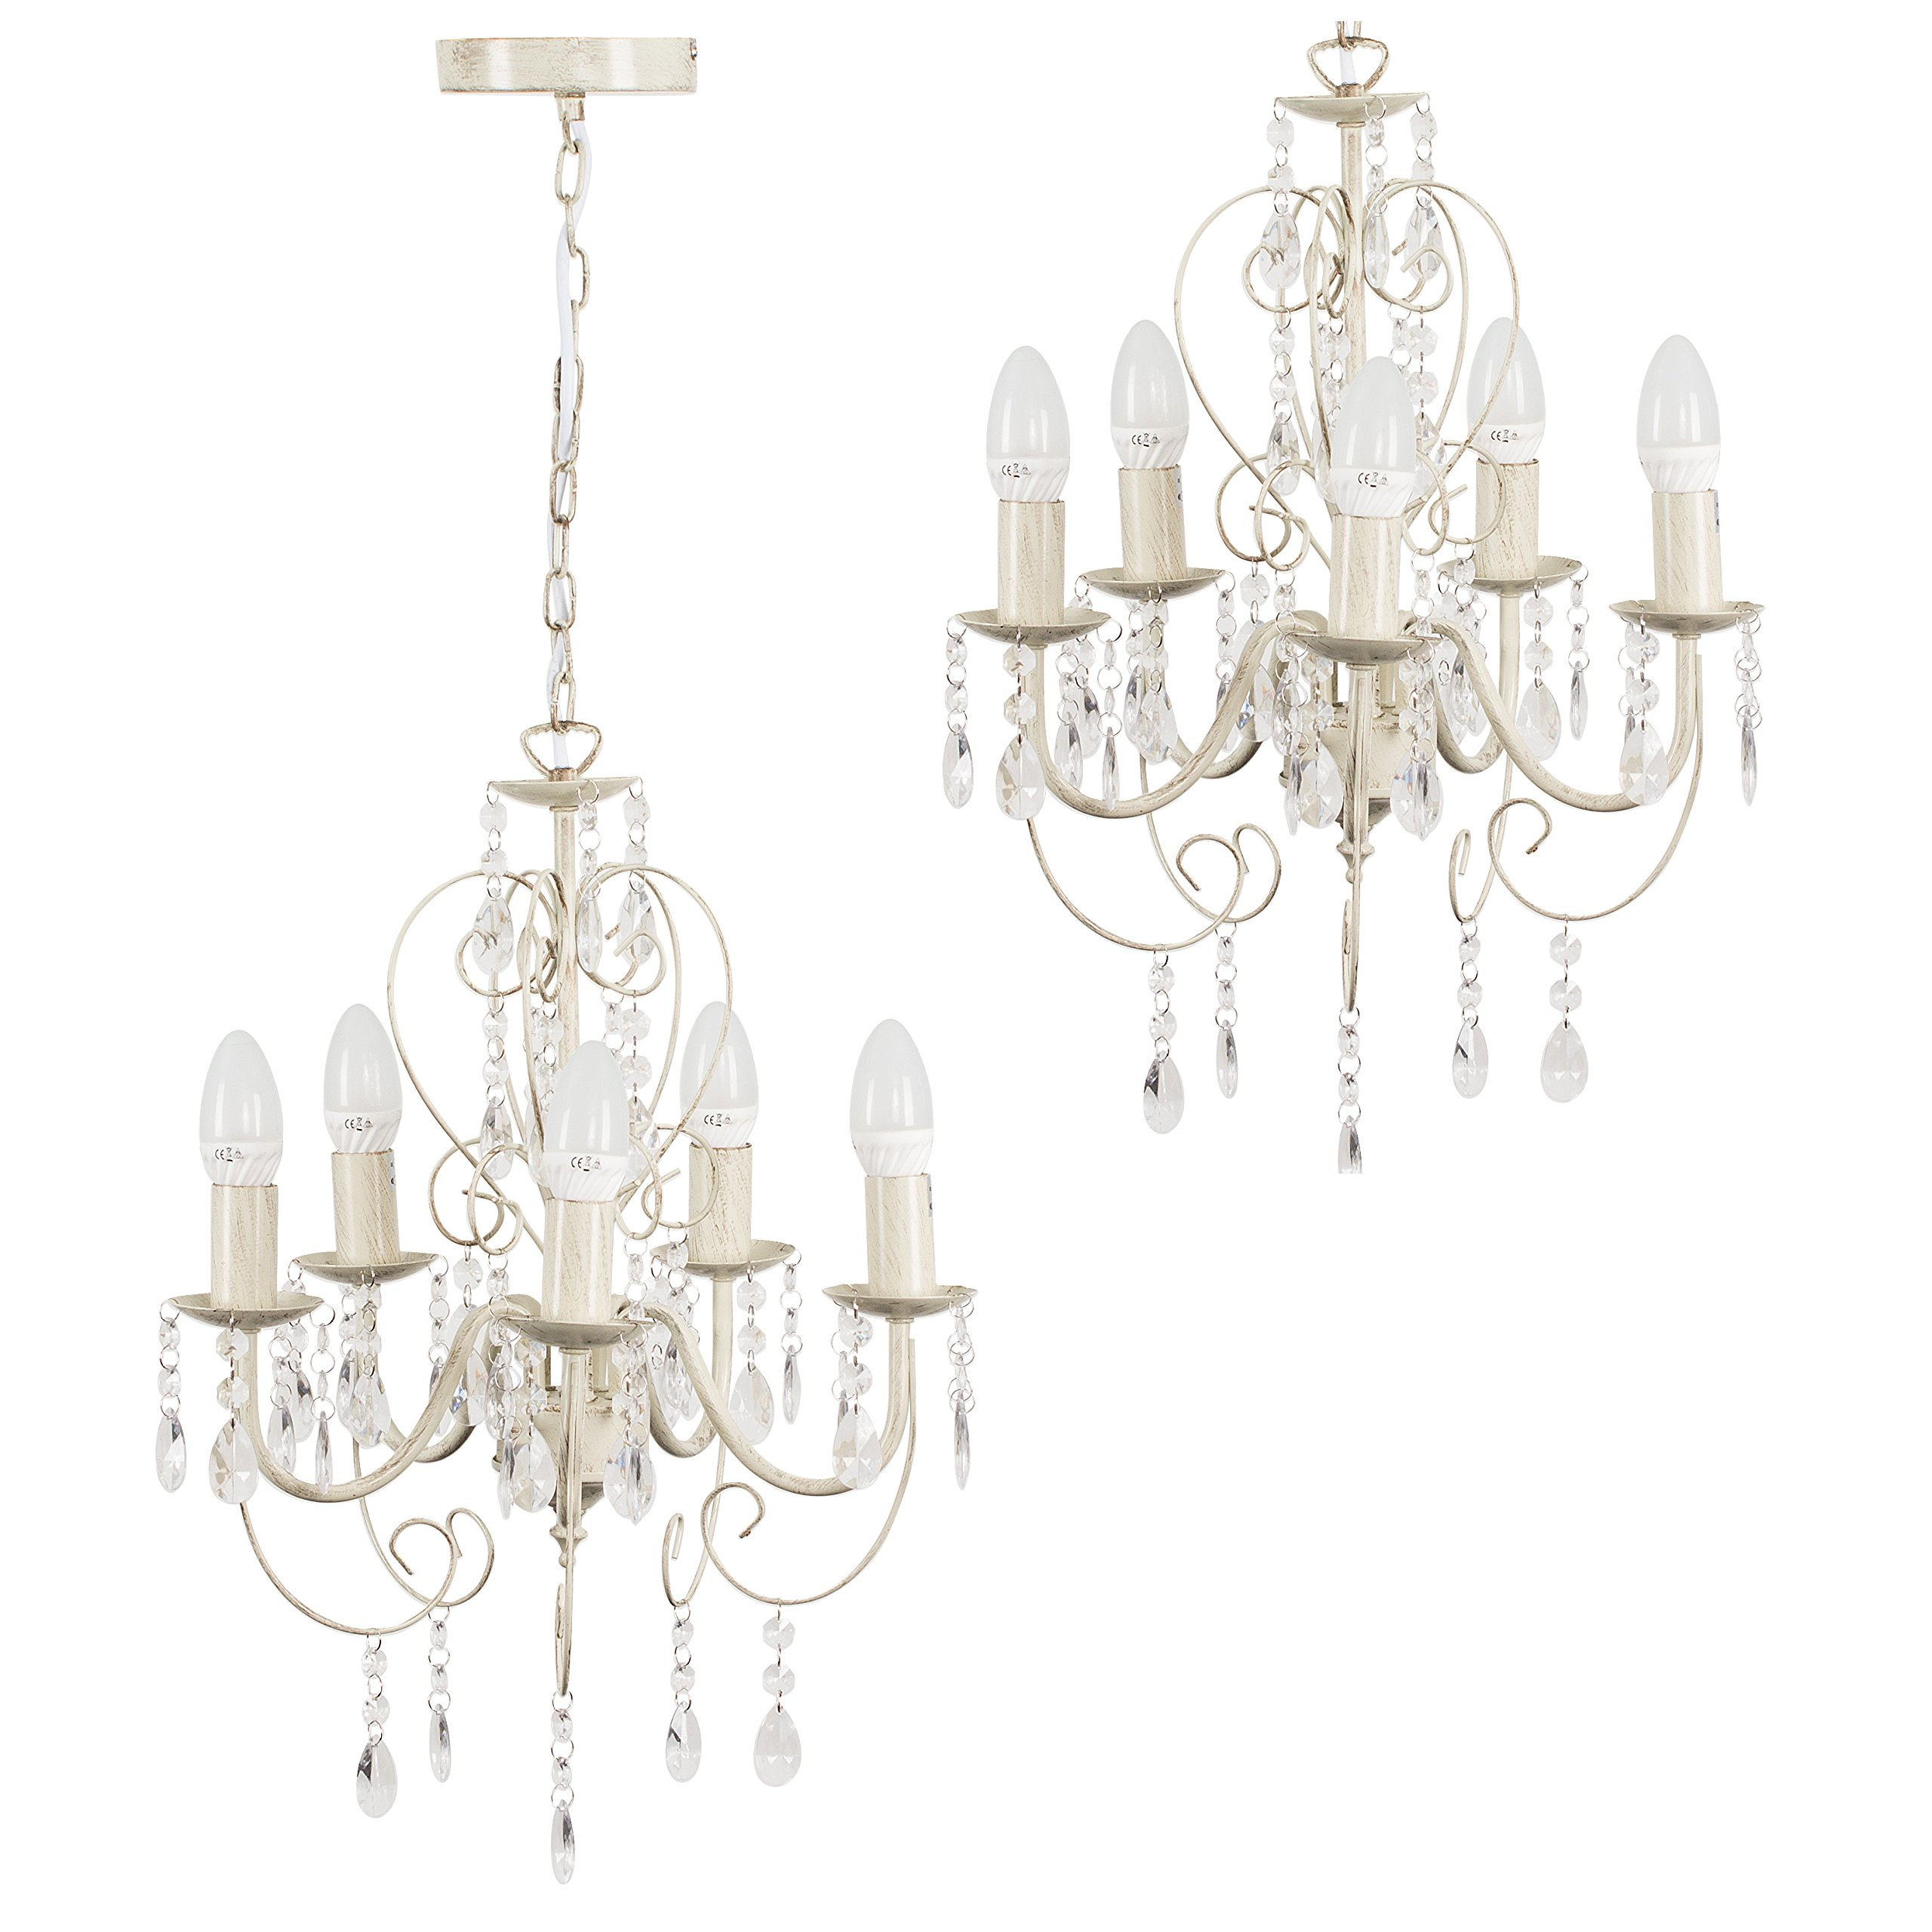 shabby chic lighting. Traditional Cream Ornate Vintage Style Shabby Chic 5 Way Ceiling Light Chandelier With Beautiful Acrylic Jewels Lighting